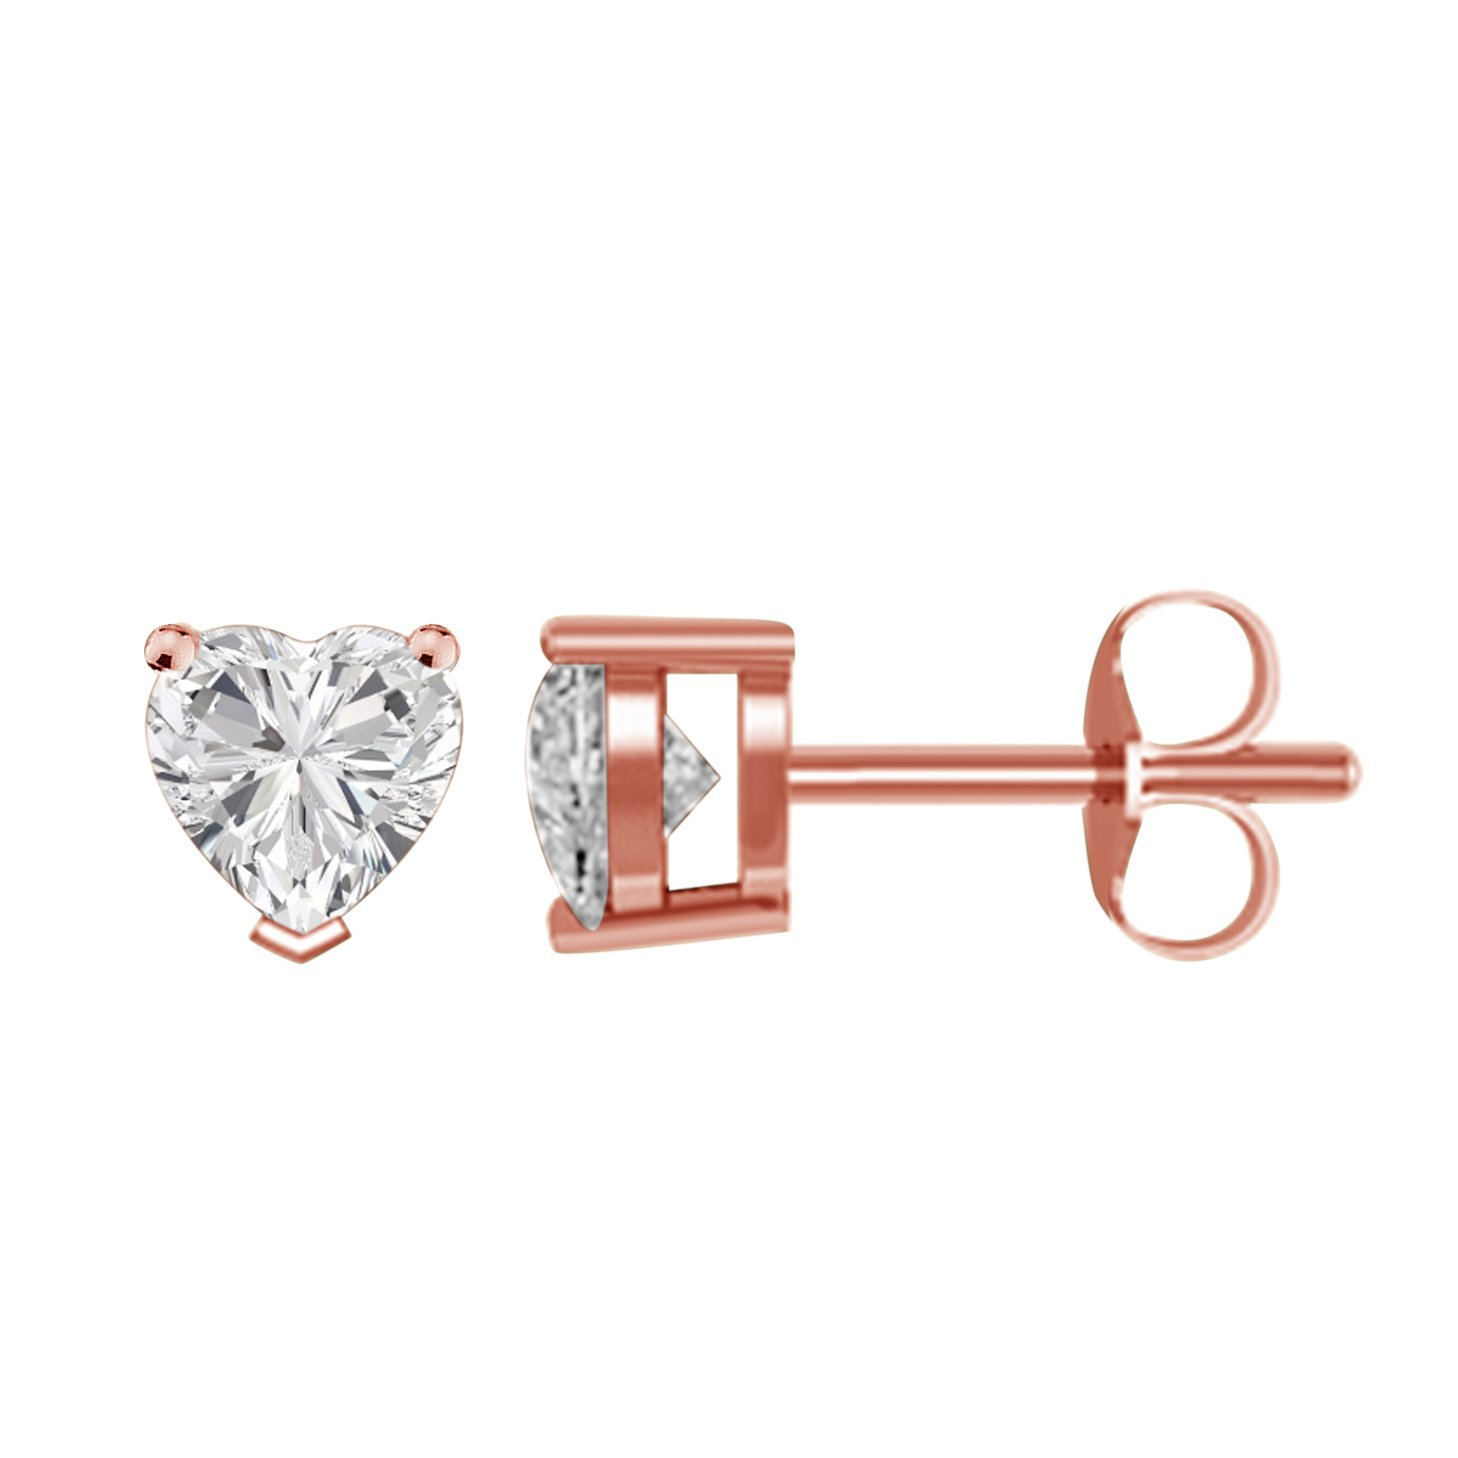 14K Rose Gold Plated CZ Stud Earrings Simulated Diamond Heart Cubic Zirconia Ear Stud Set 4mm To 8mm